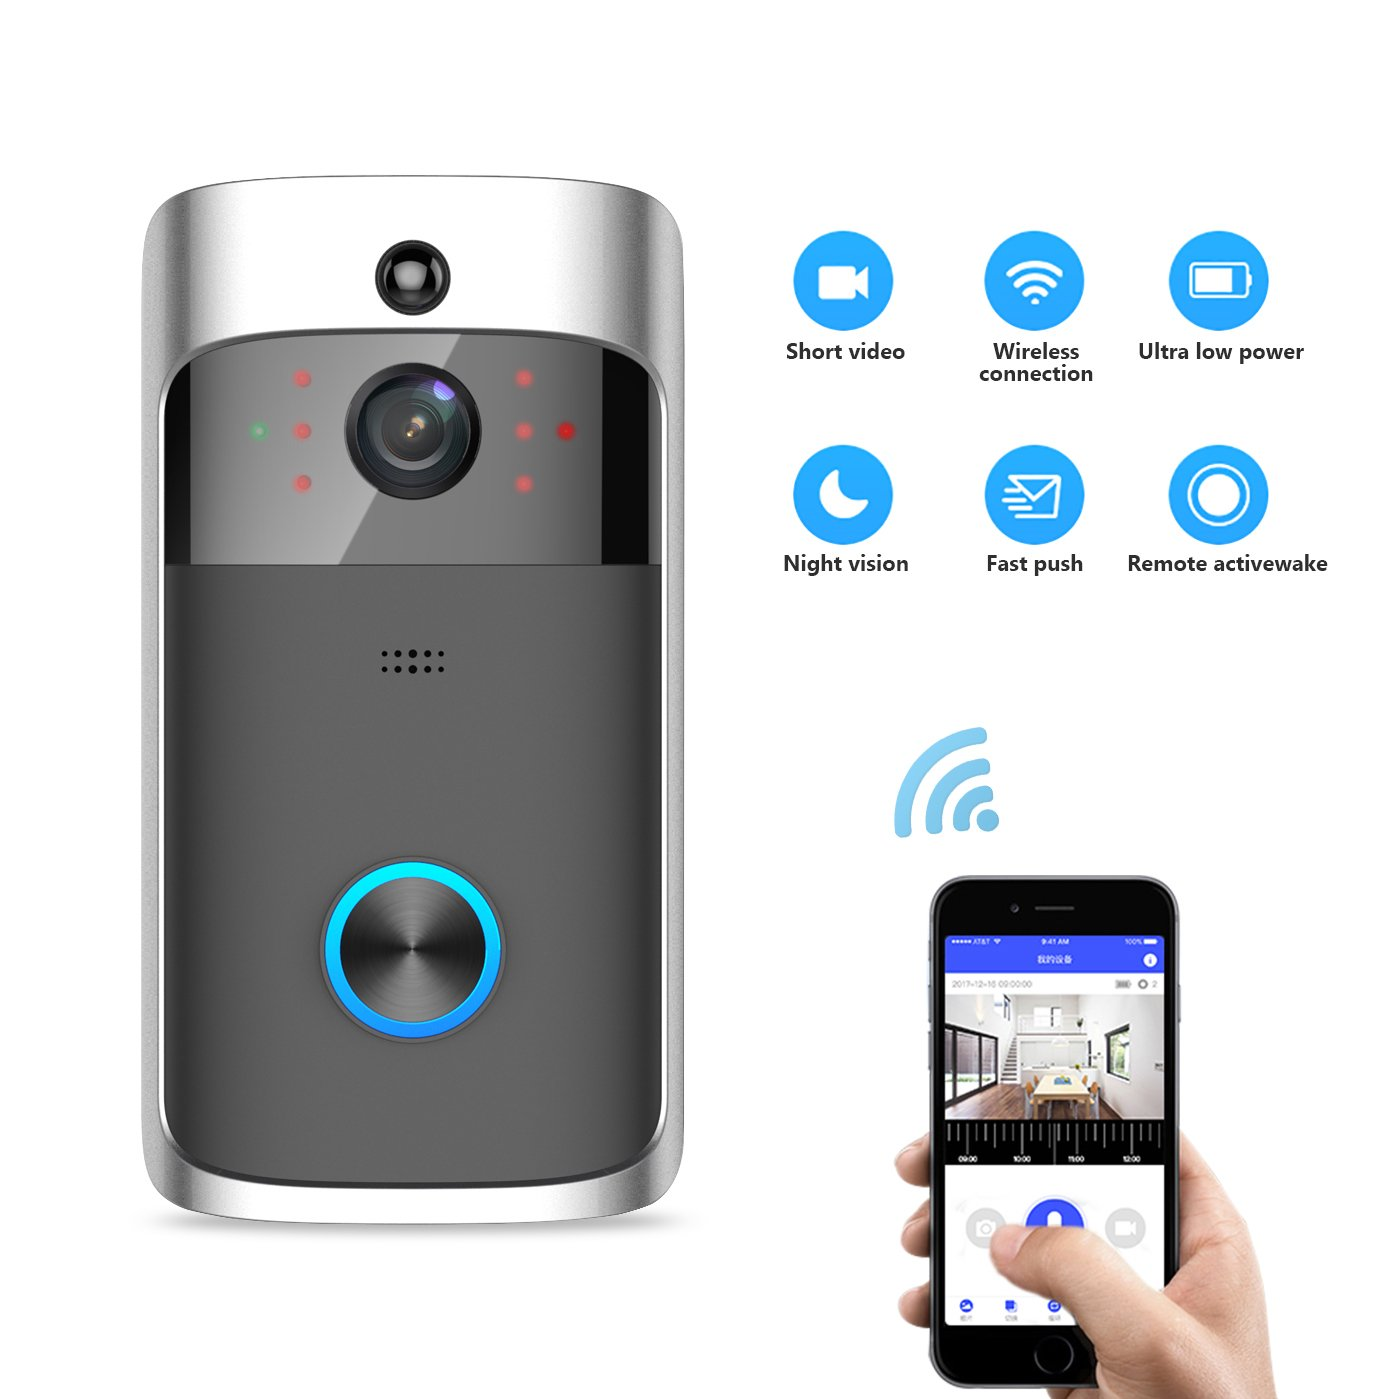 【2018 YUZES WiFi Video Doorbell with Anti-Theft Truly Wire-Free Camera,Support Smartphone Remote Monitoring,Two-Way Talk and Video, Night Vision, PIR Motion Detection,APP Control